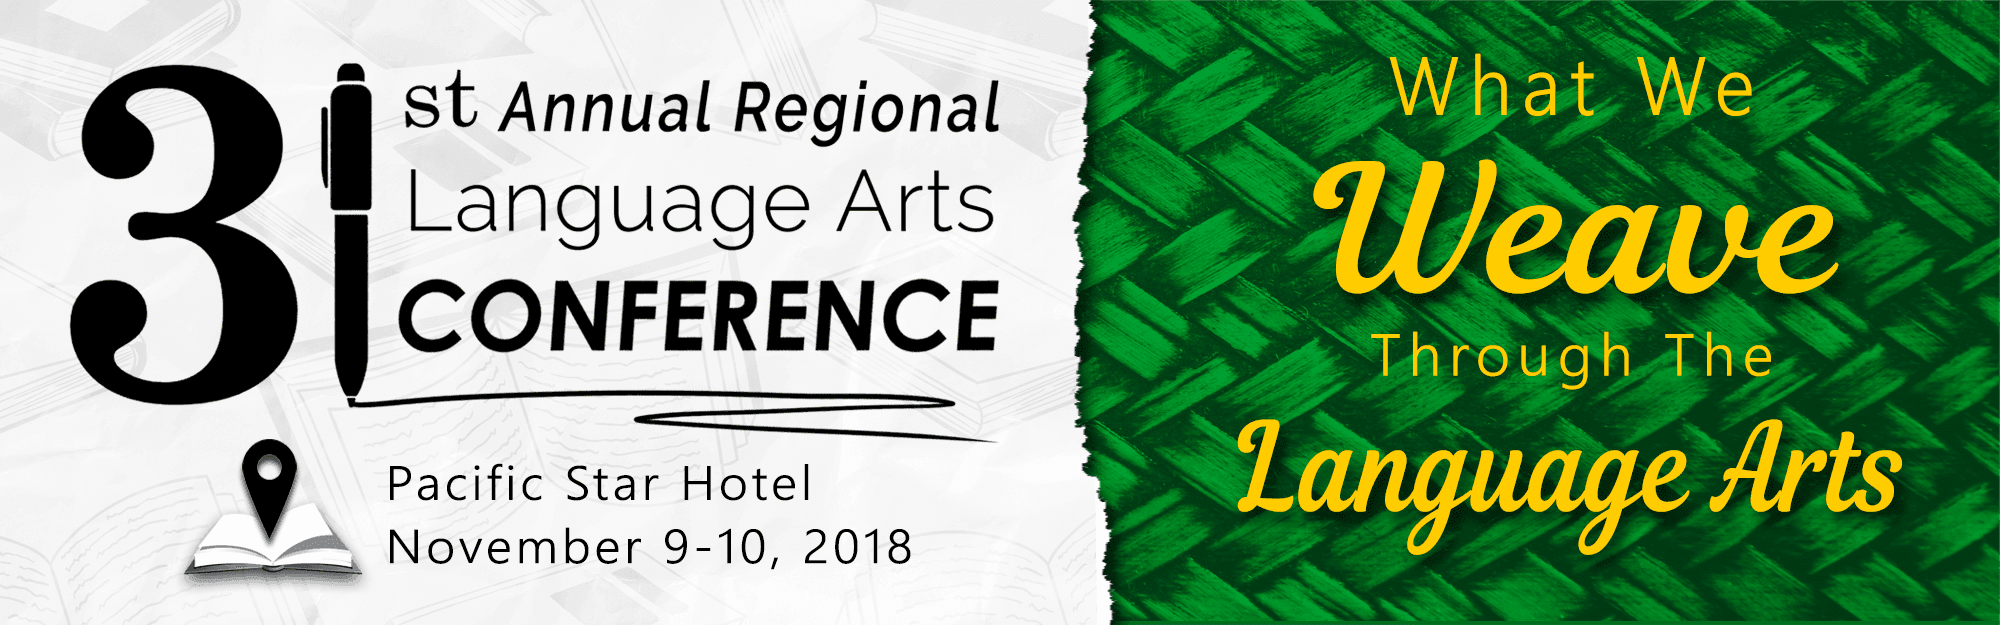 Banner for the 31st Annual Regional Language Arts Conference